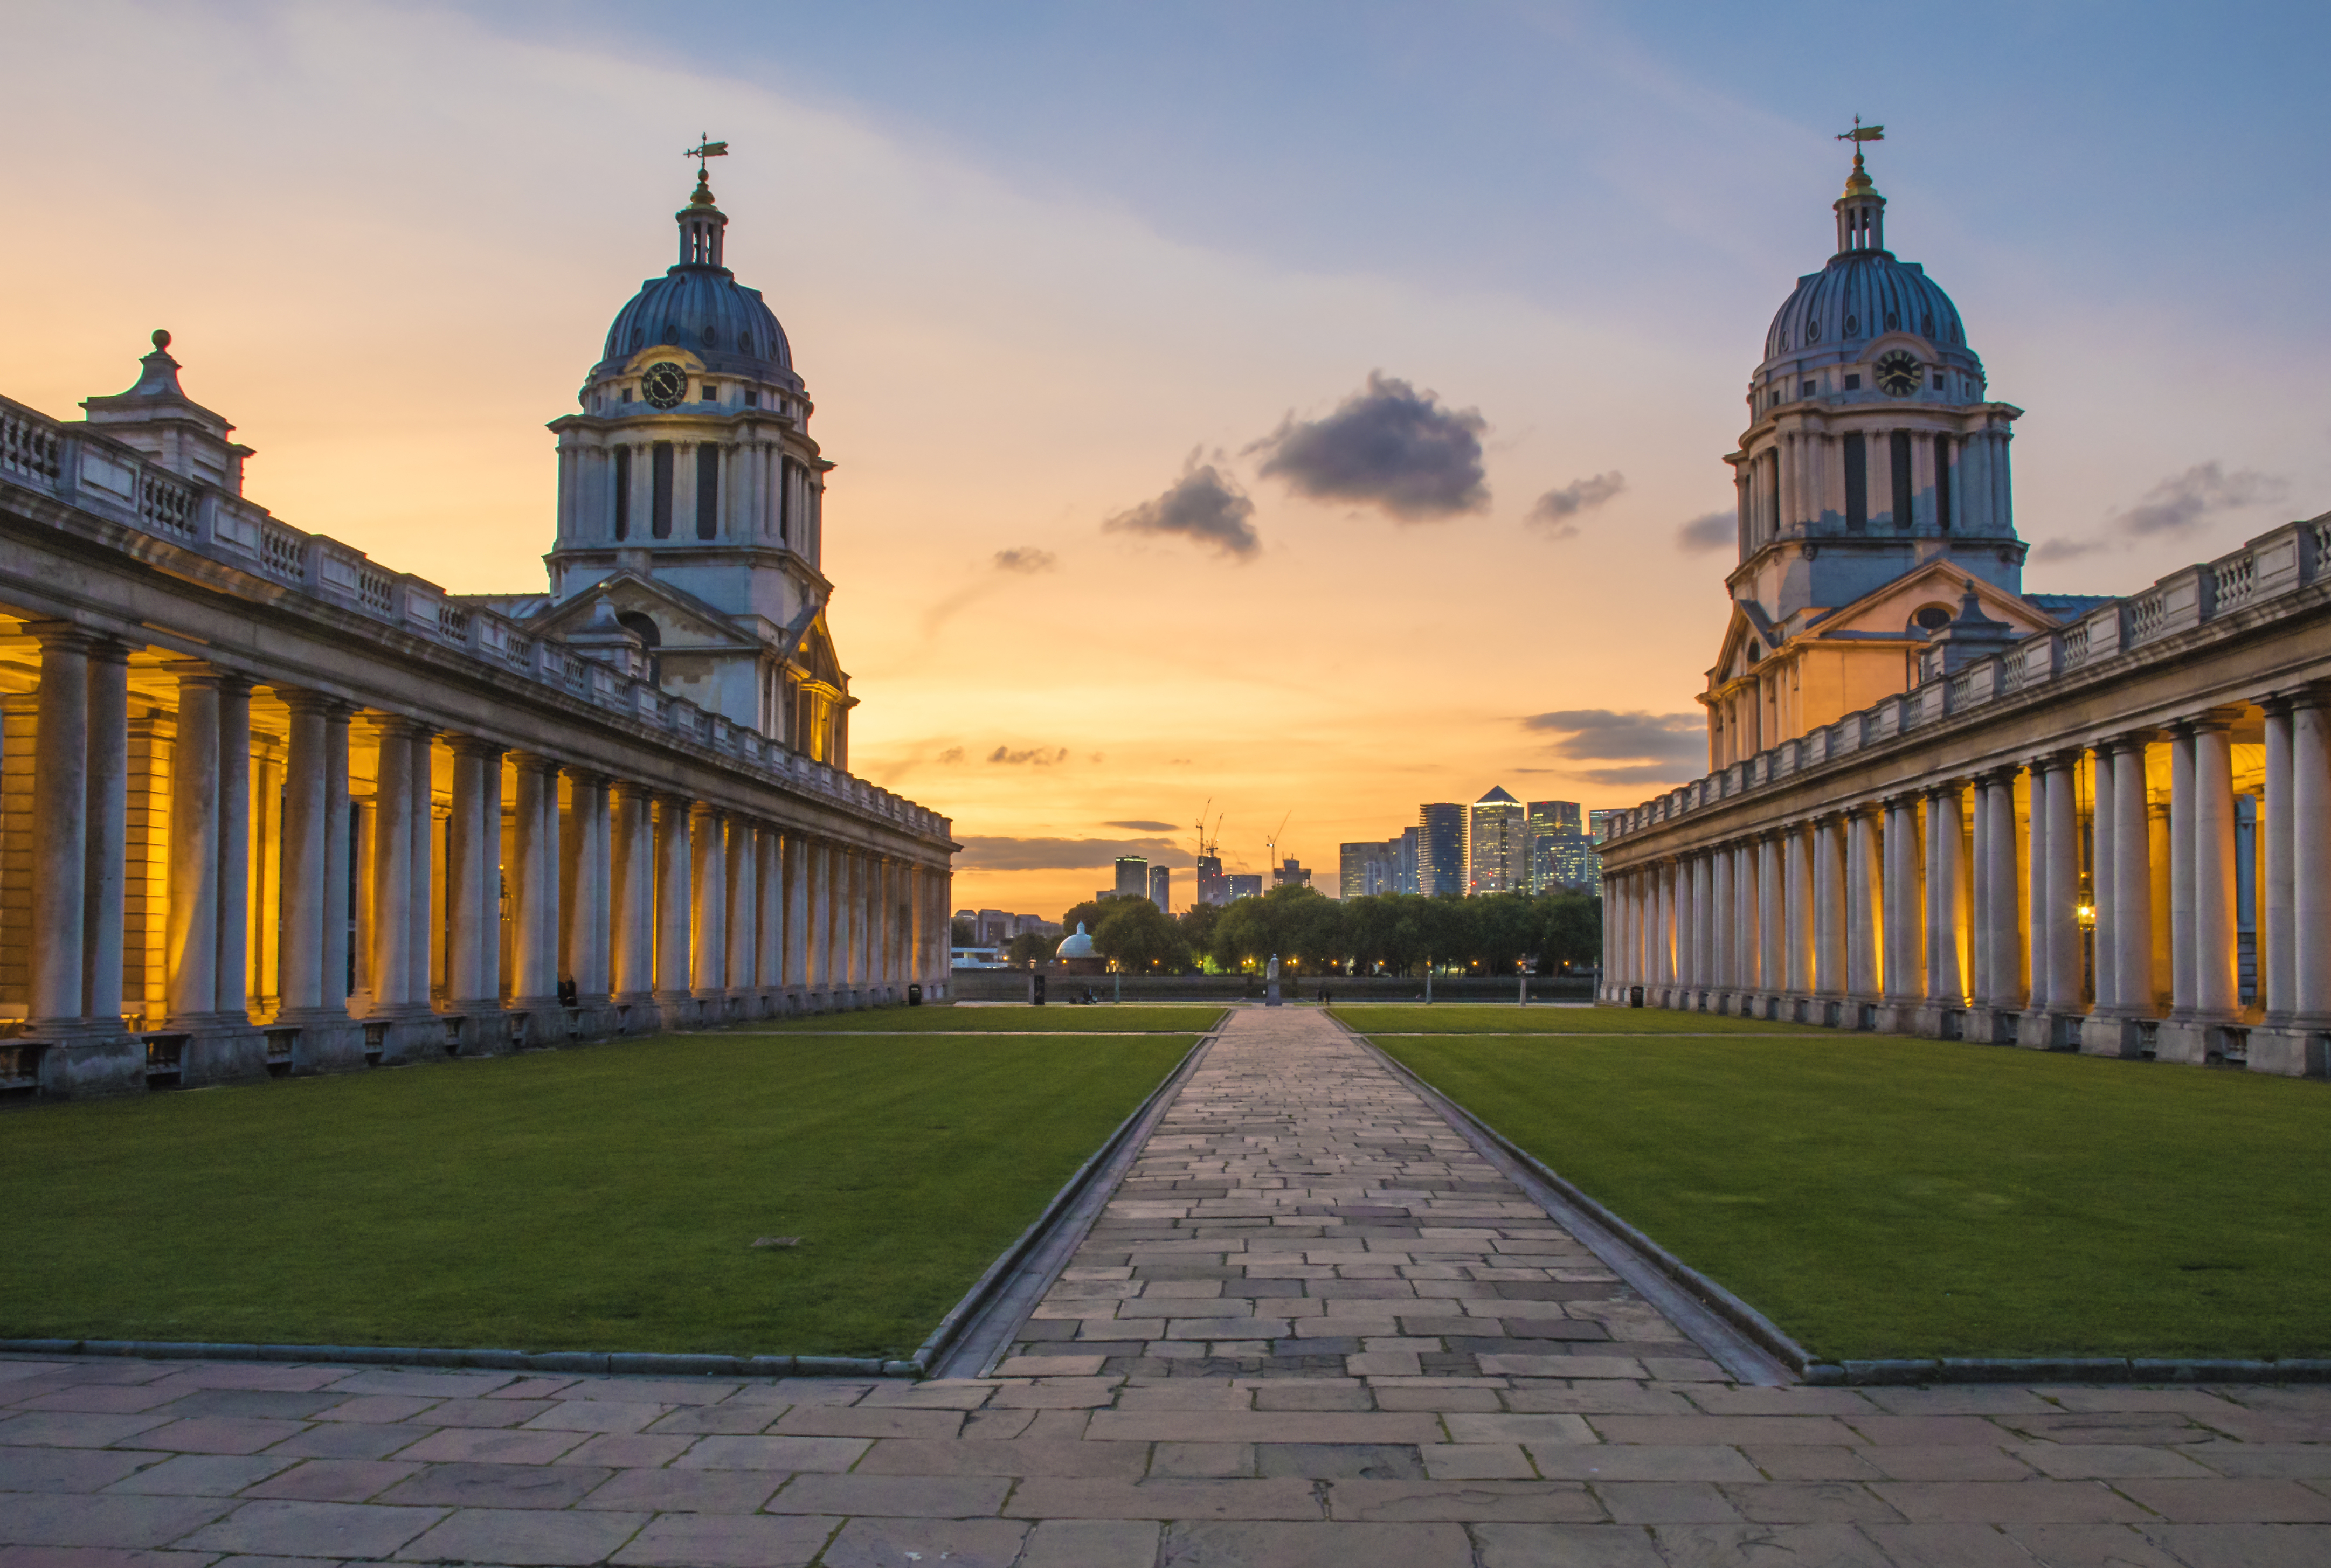 Greenwich old navel college at sunset